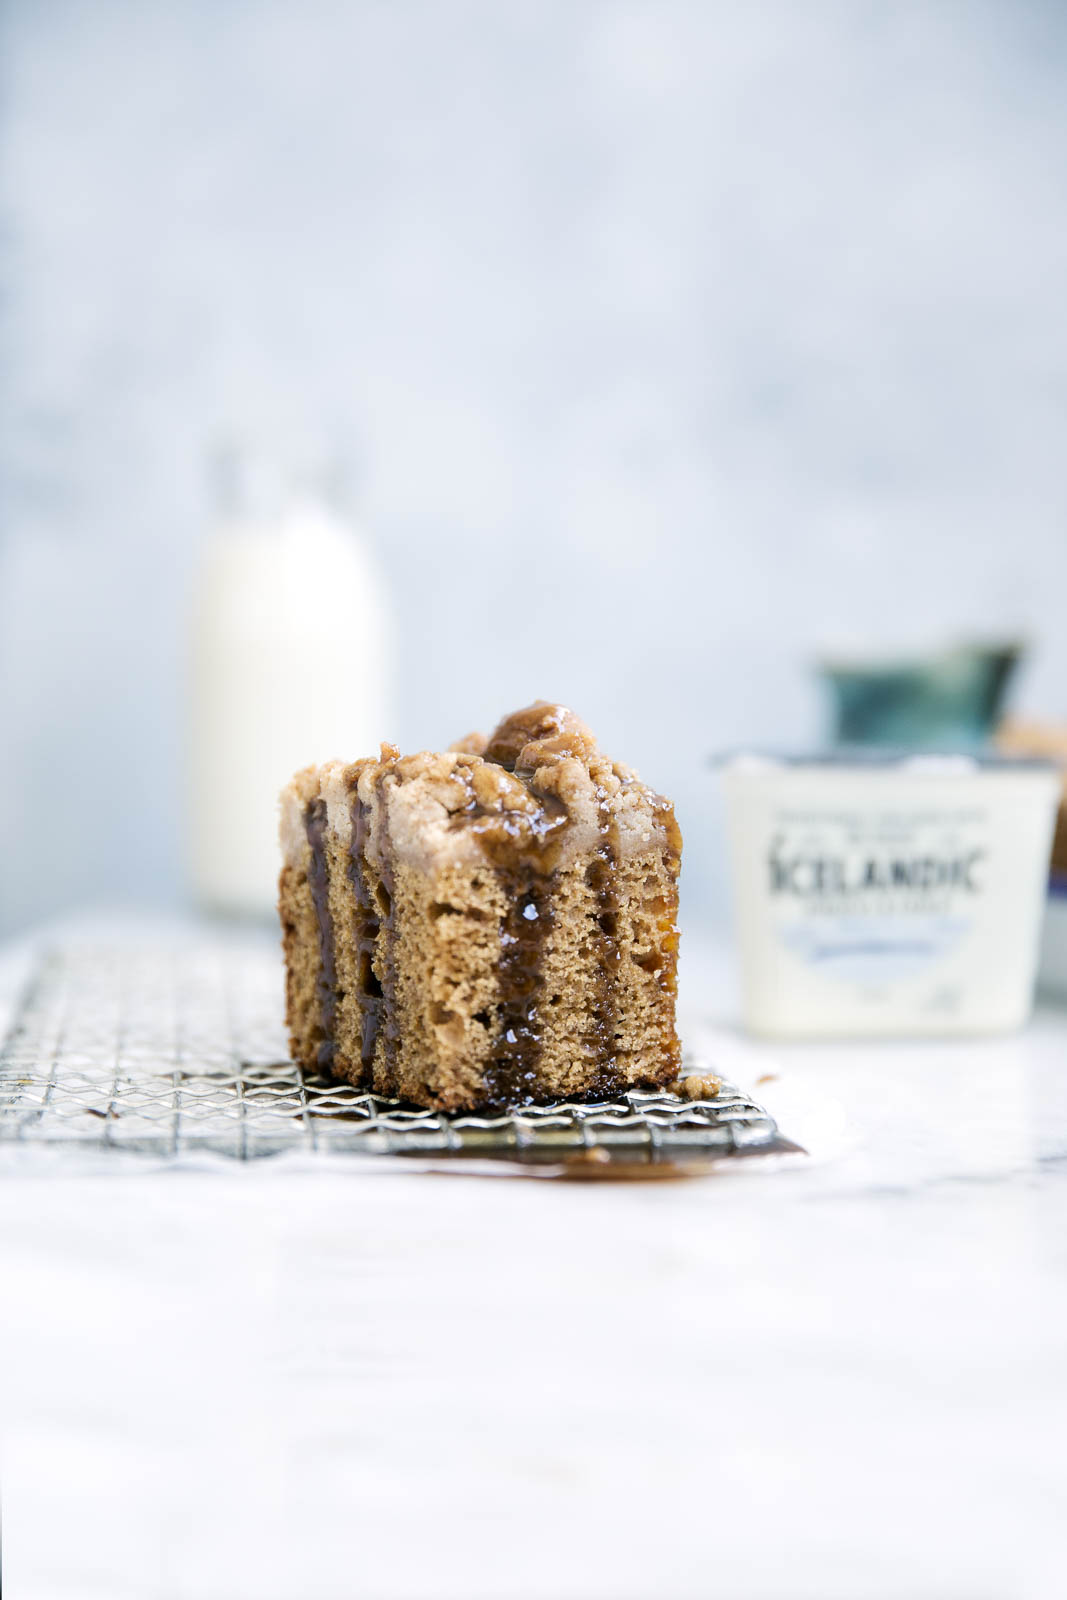 Perfectly spiced and super moist, this Icelandic skyr spice cake is topped with a ridiculously addicting crumb topping and toffee sauce!